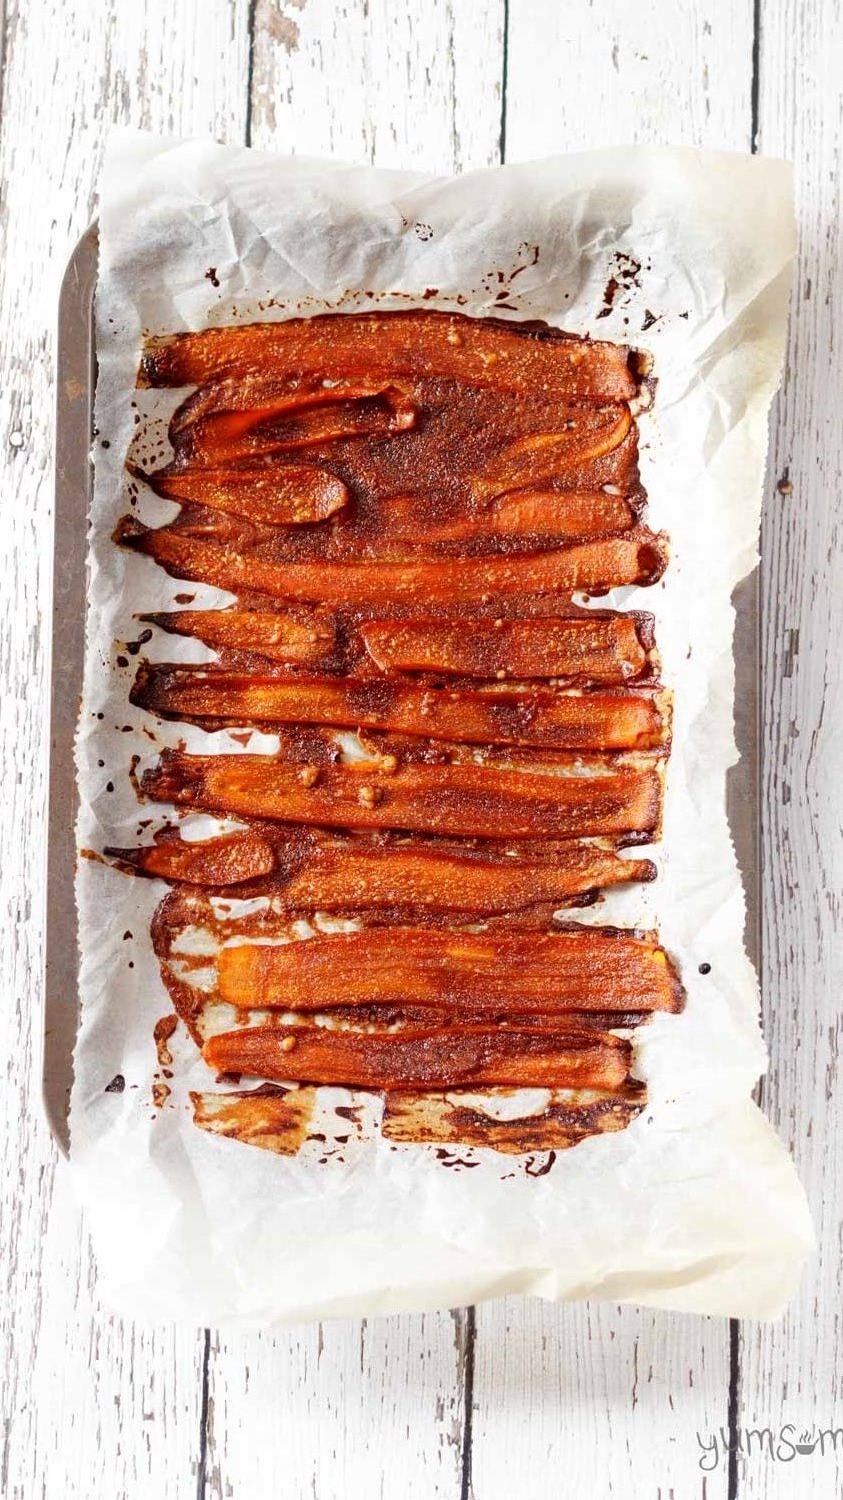 If Bacon Is Back, Should We Light One Up, Too?